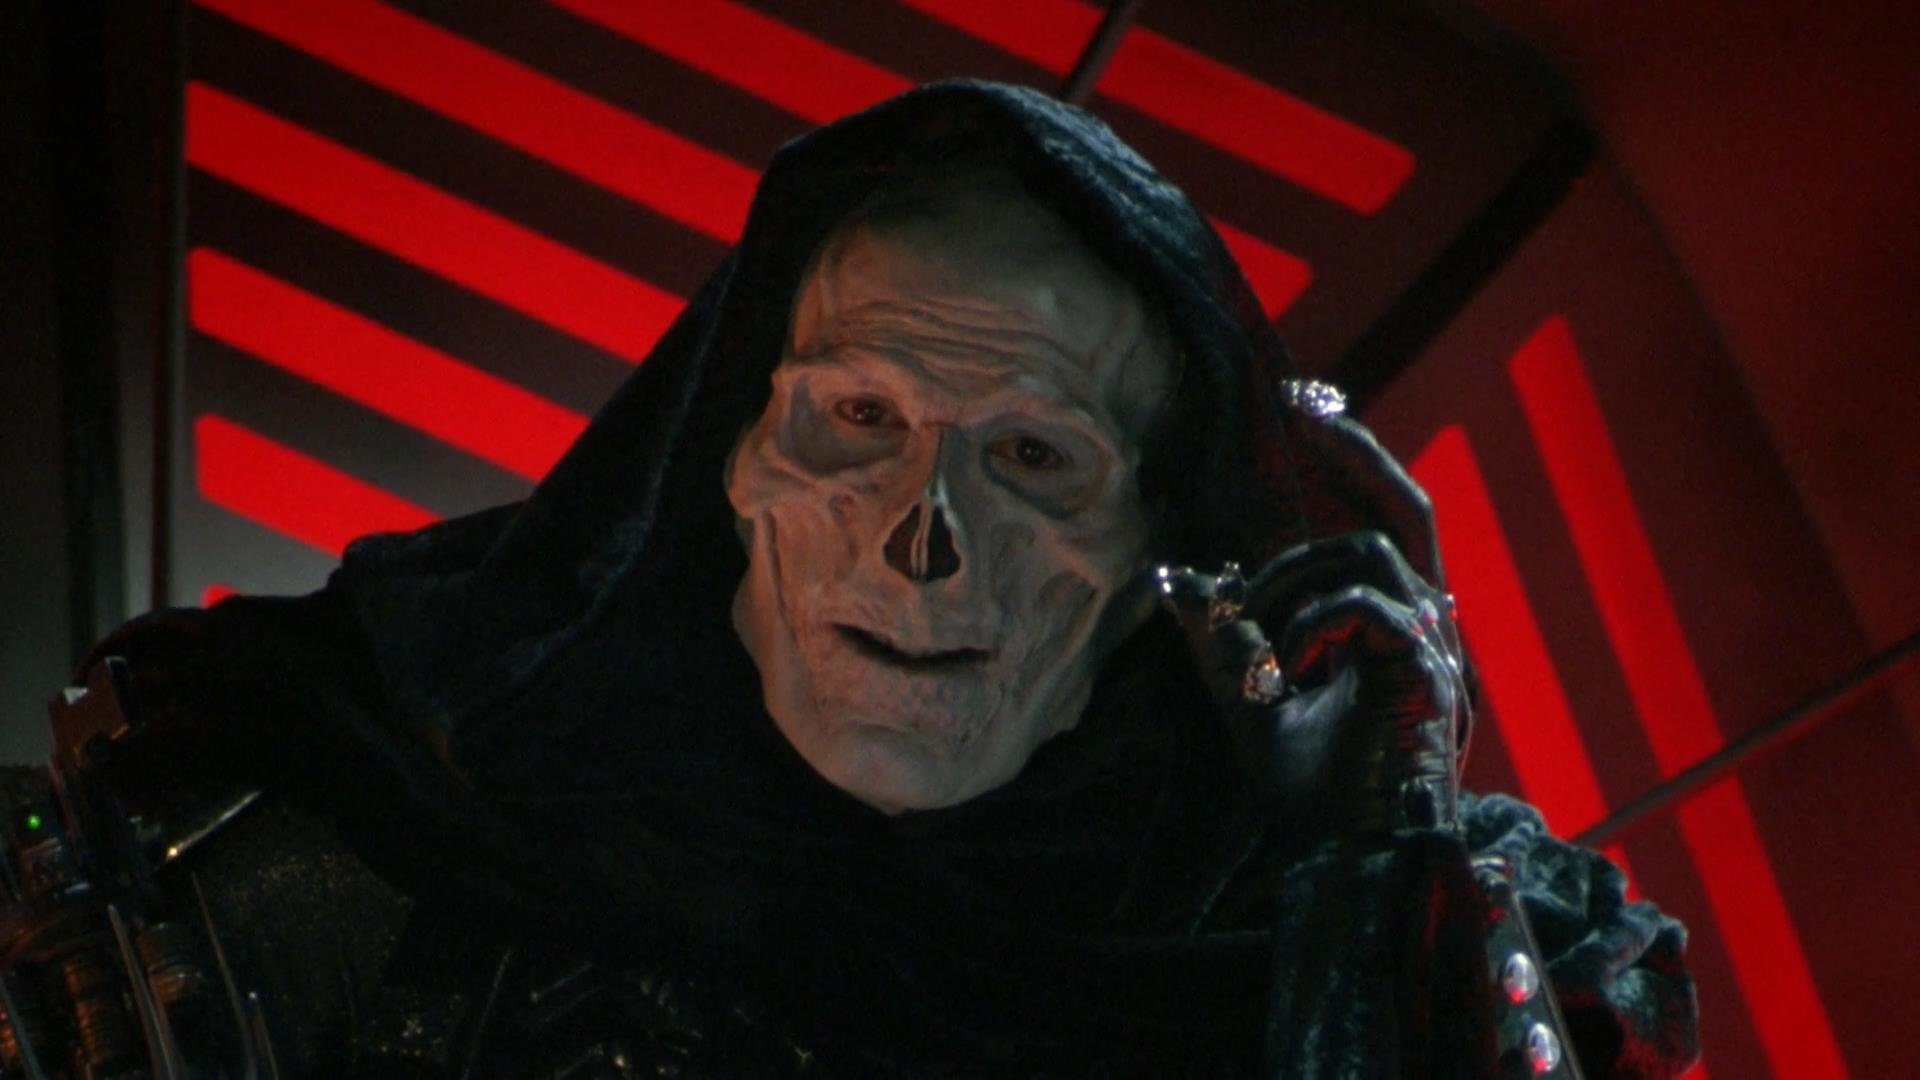 Frank Langella as Skeletor